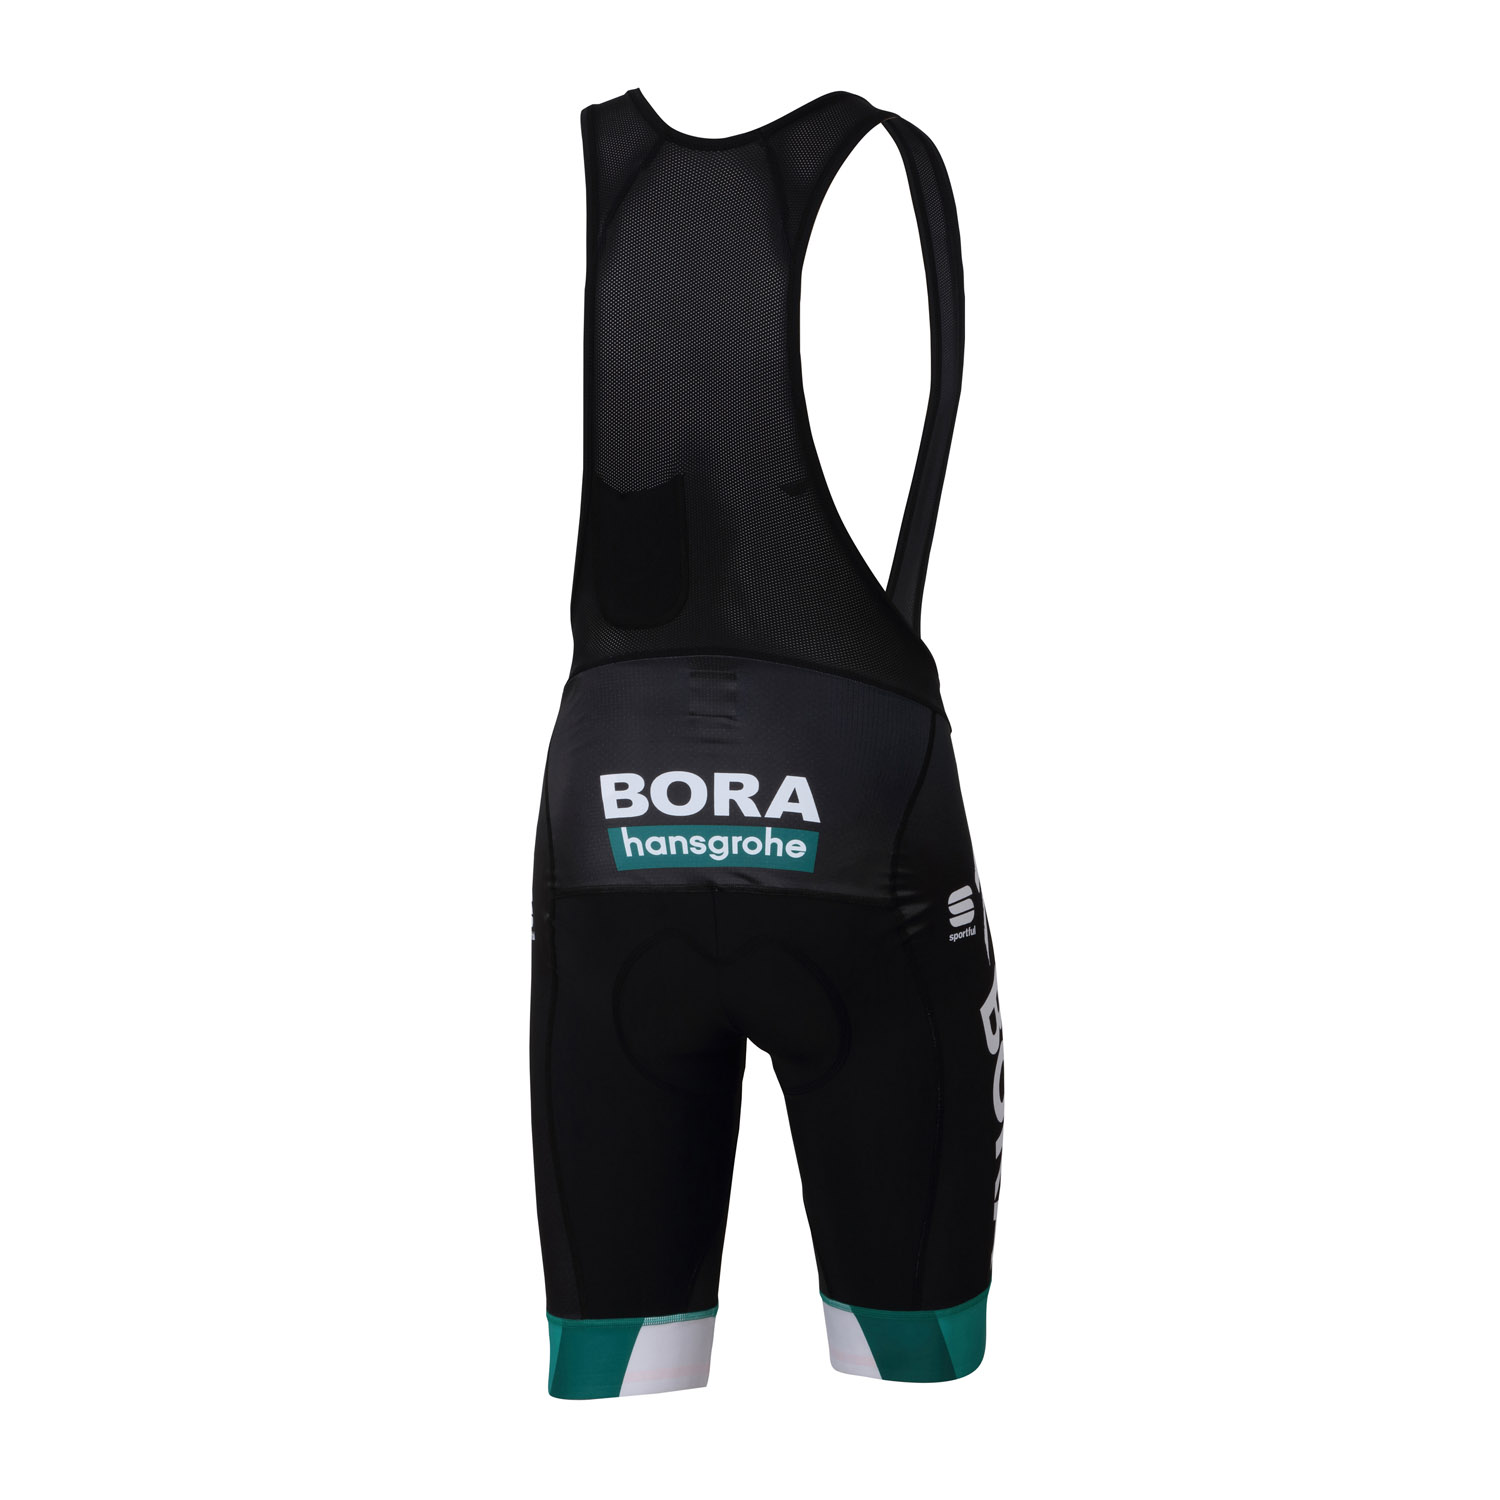 sportful team bora hansgrohe bibshort herren online shop zweirad stadler. Black Bedroom Furniture Sets. Home Design Ideas